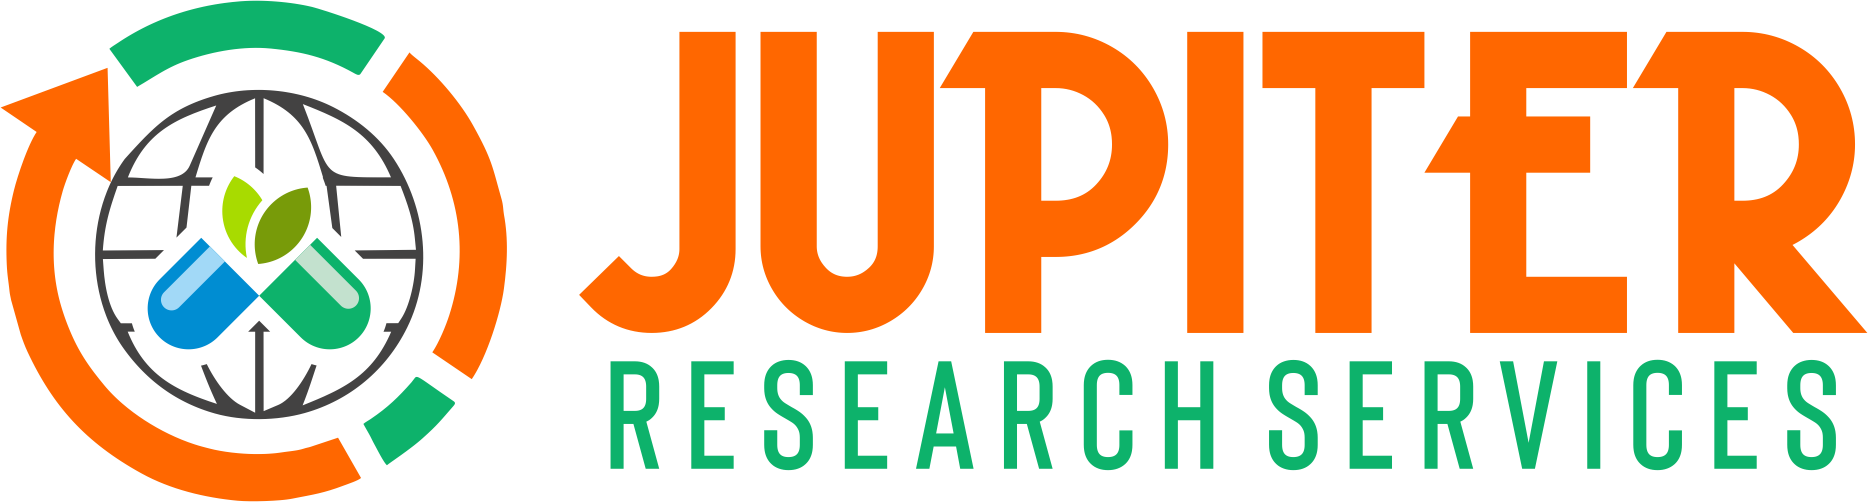 Jupiter Research Services